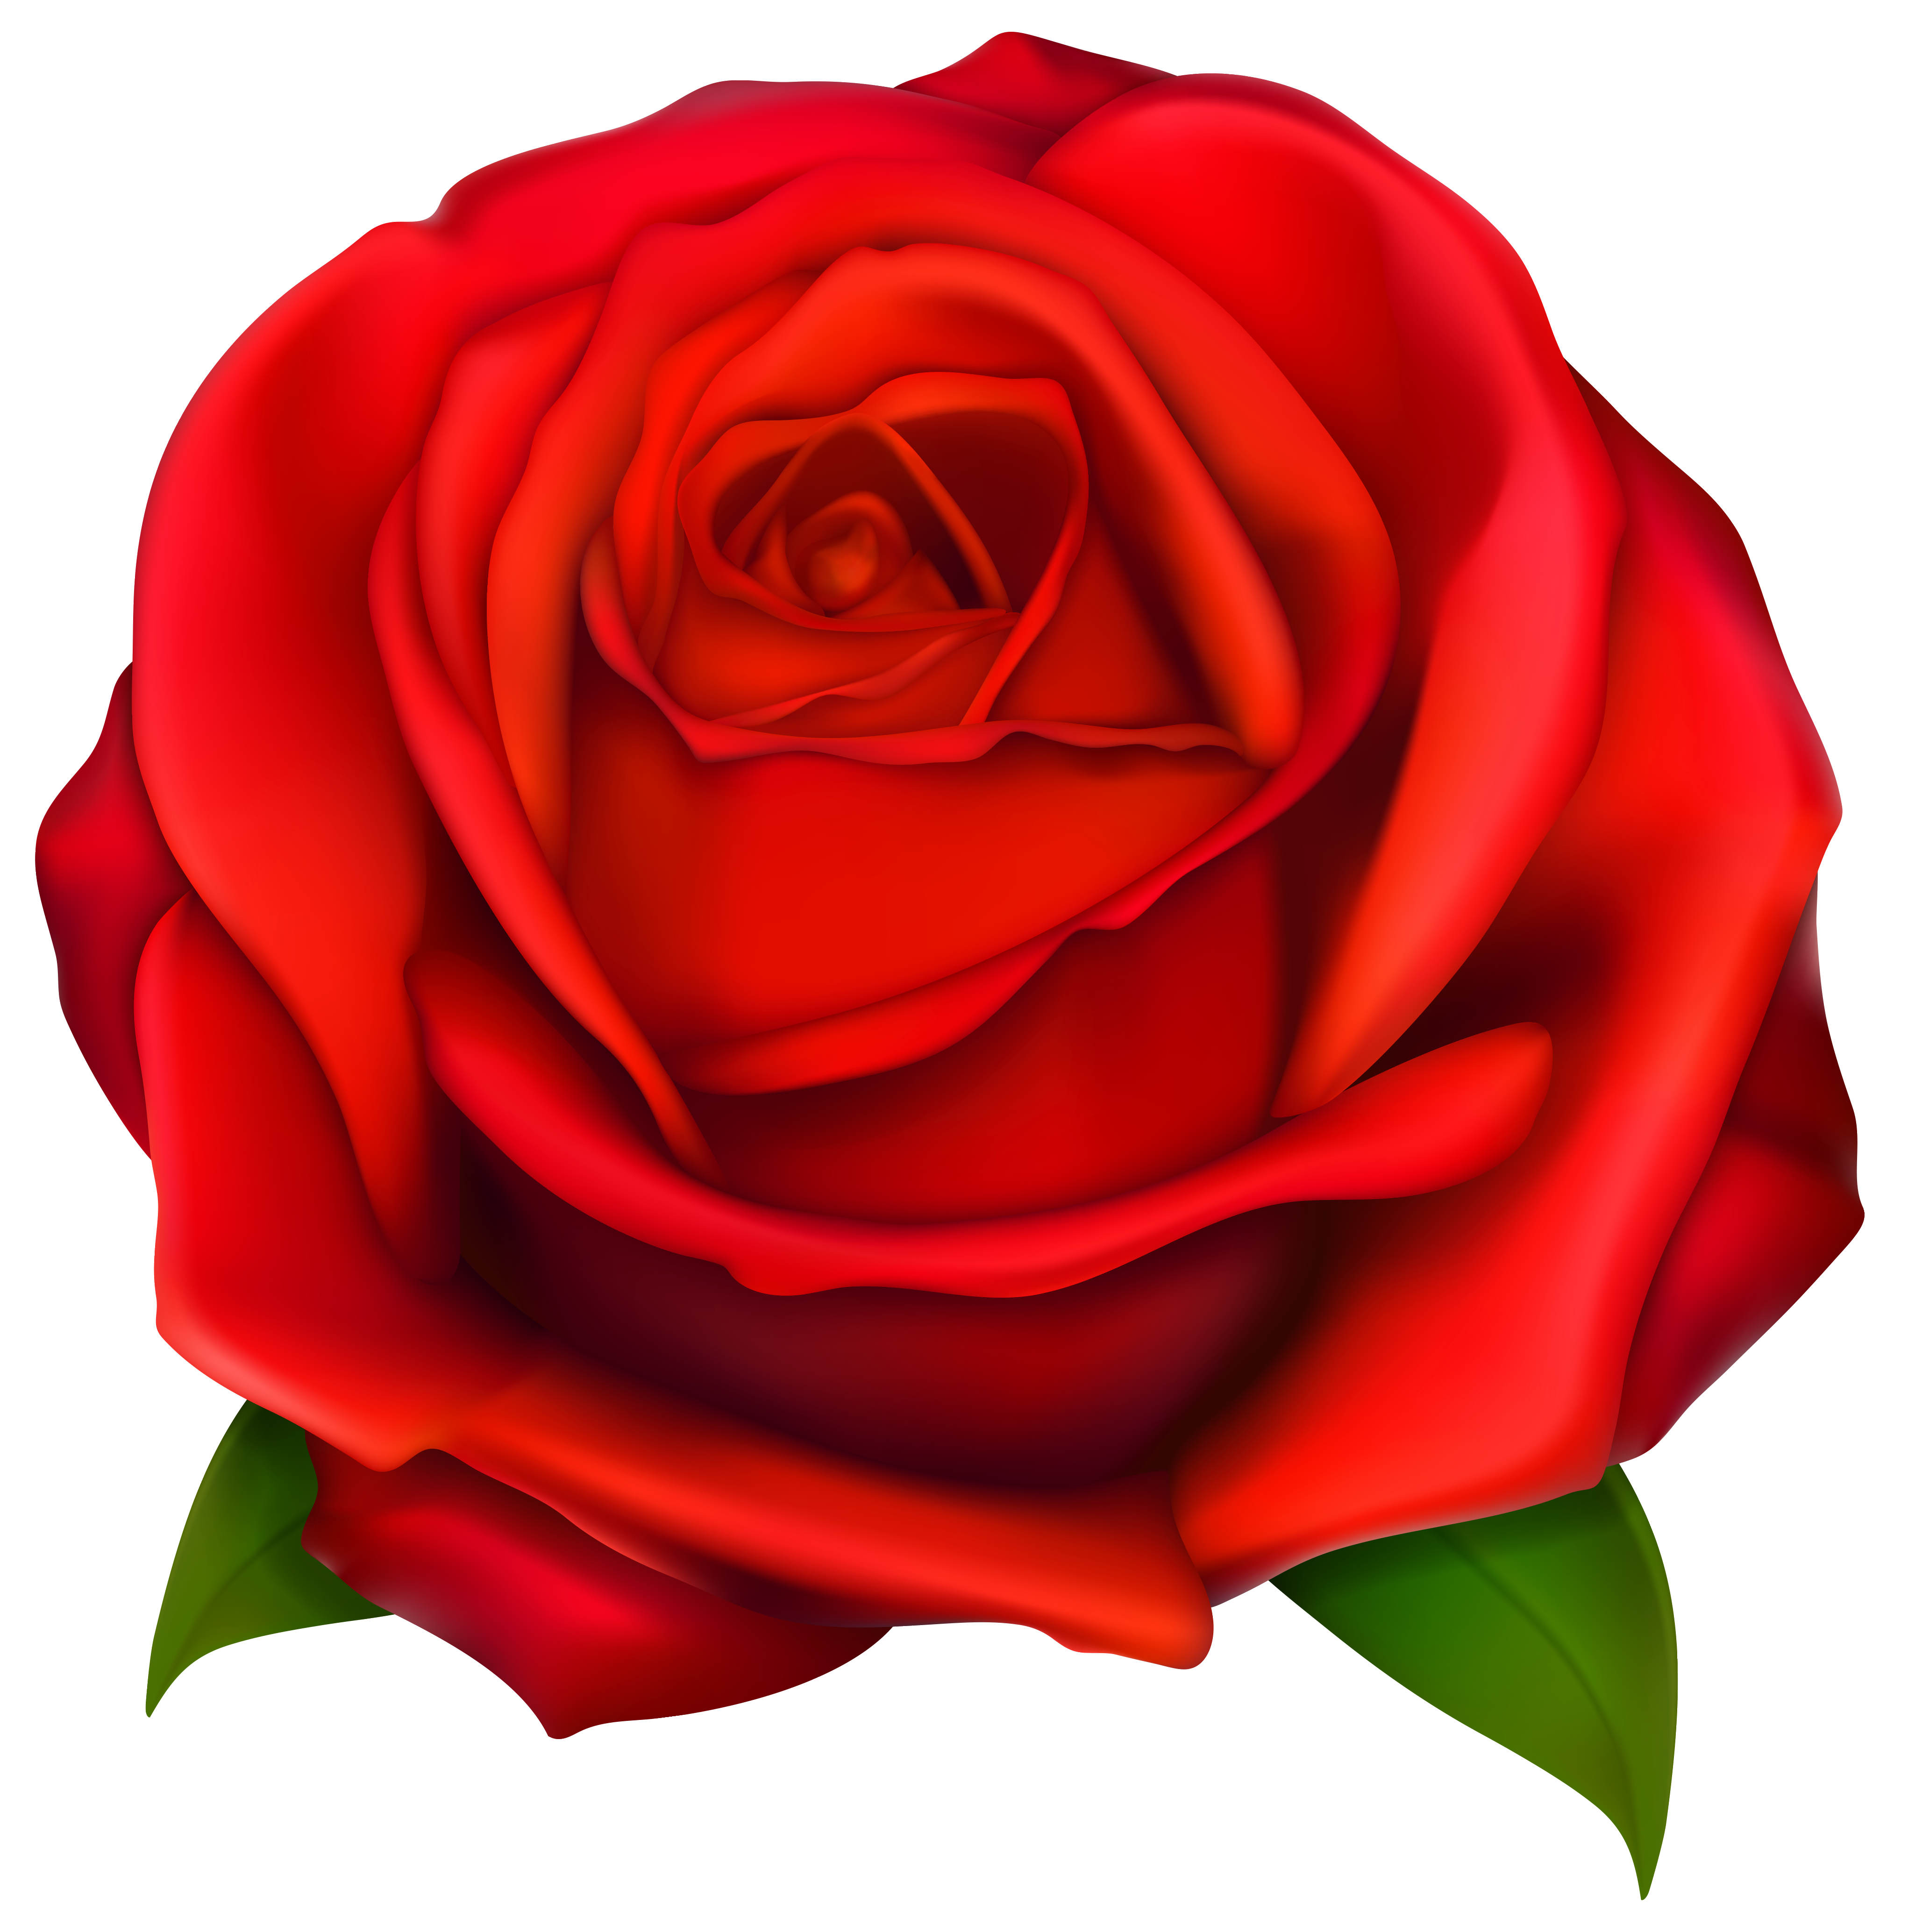 clip art red rose #7092